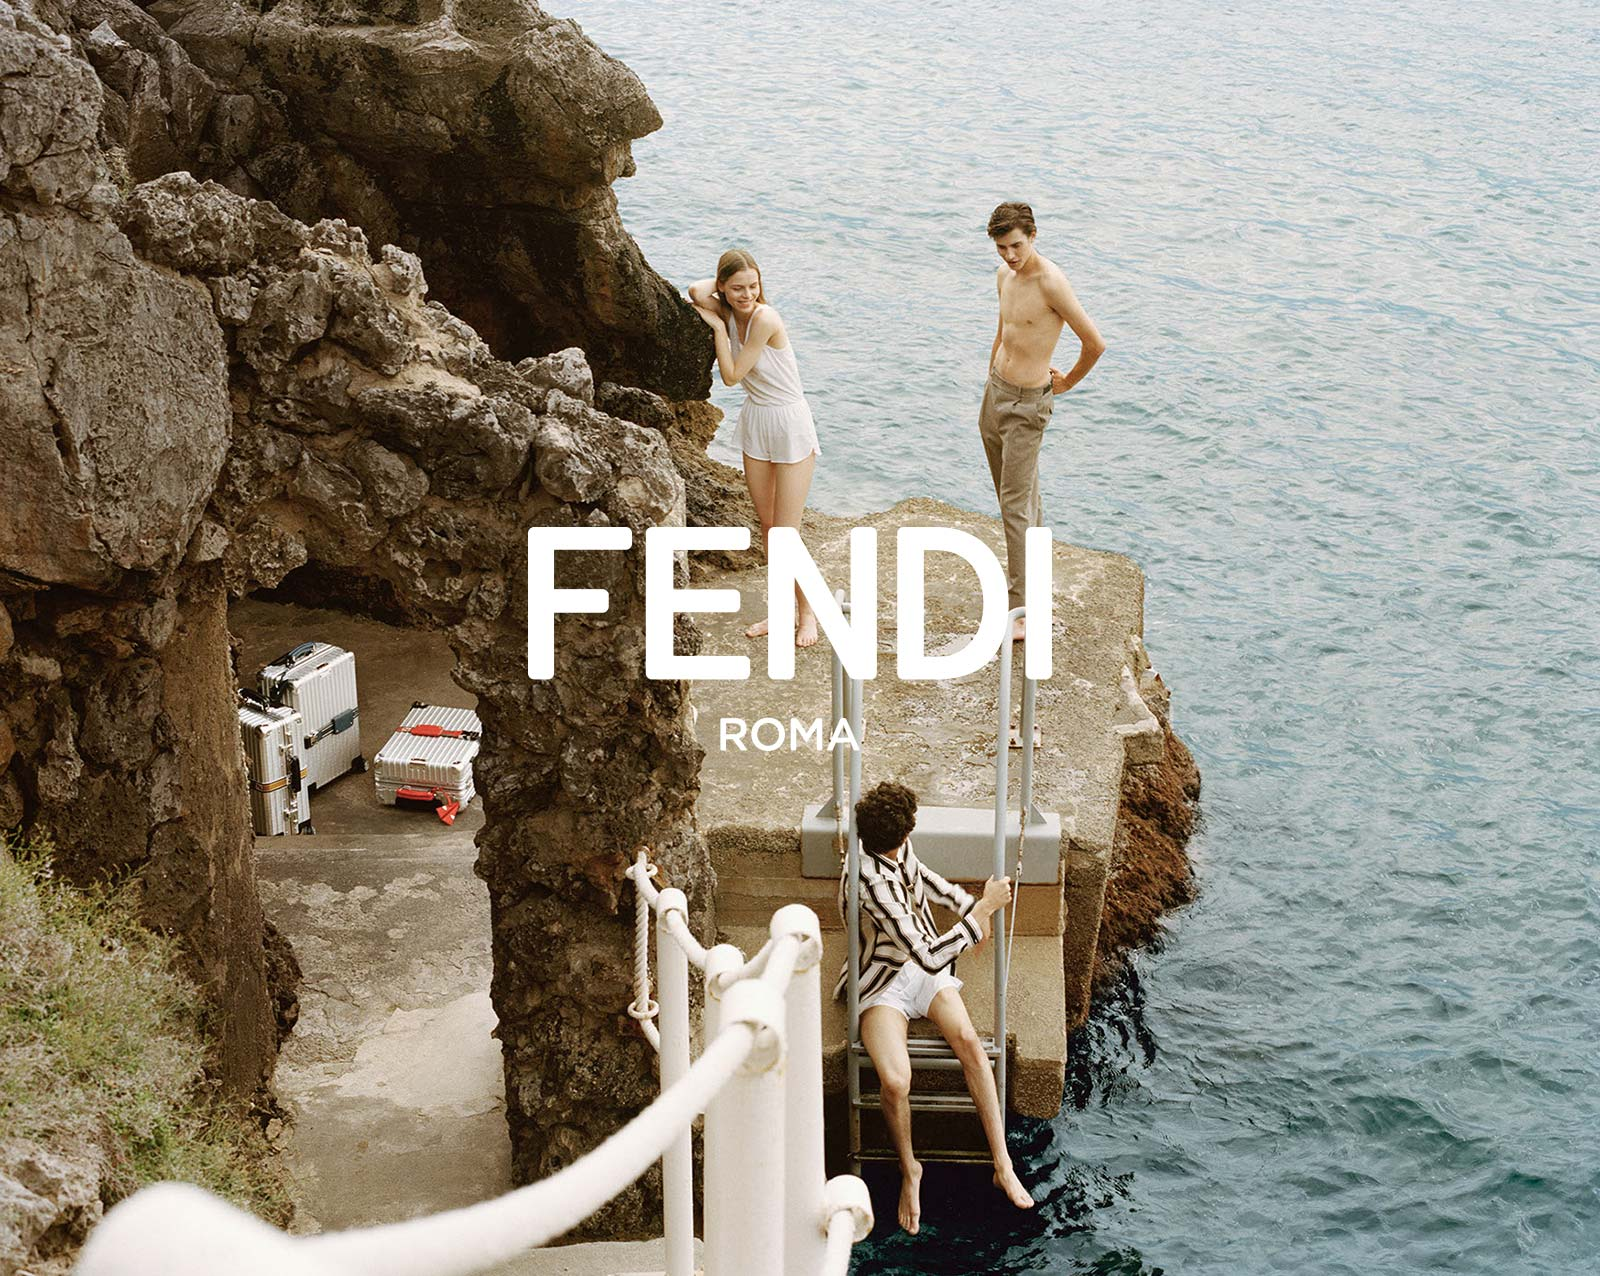 Fendi Identity Design as it appears in Fendi Advertising